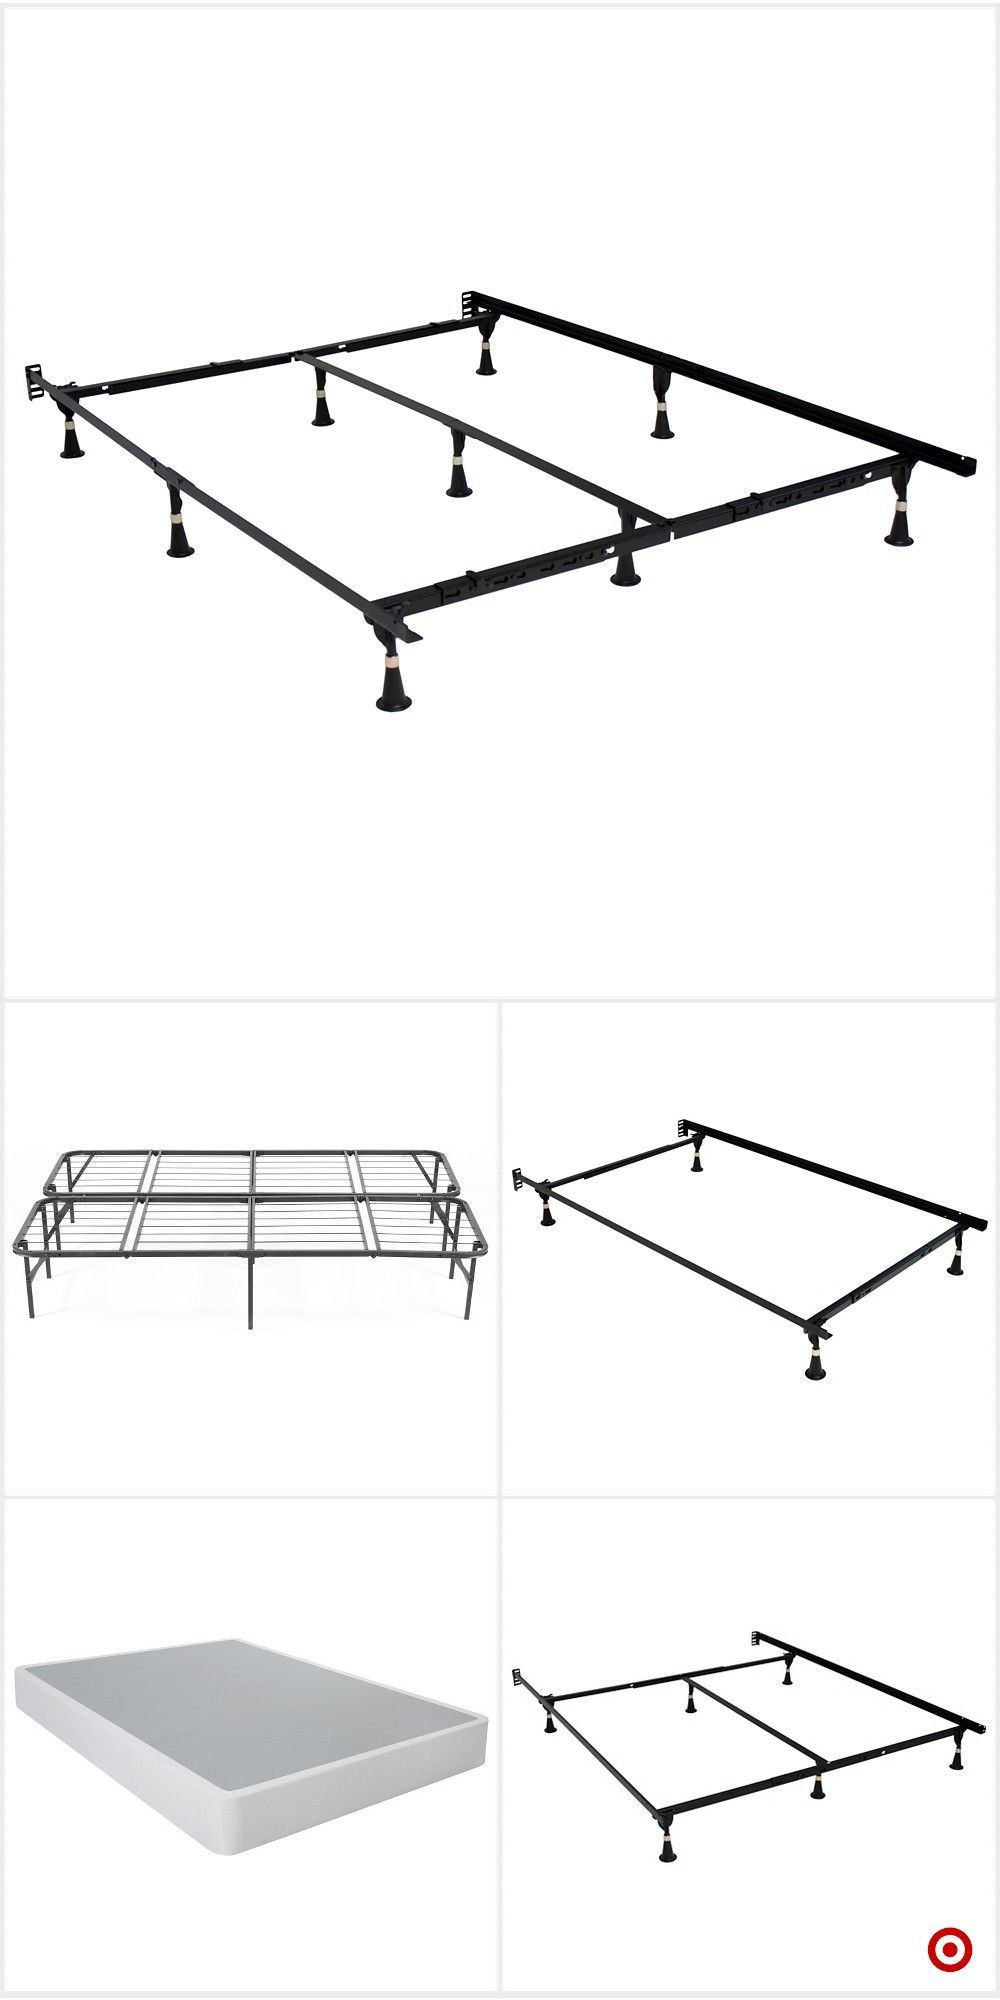 Luggage Rack Target Amusing Shop Target For Bed Frame You Will Love At Great Low Pricesfree Inspiration